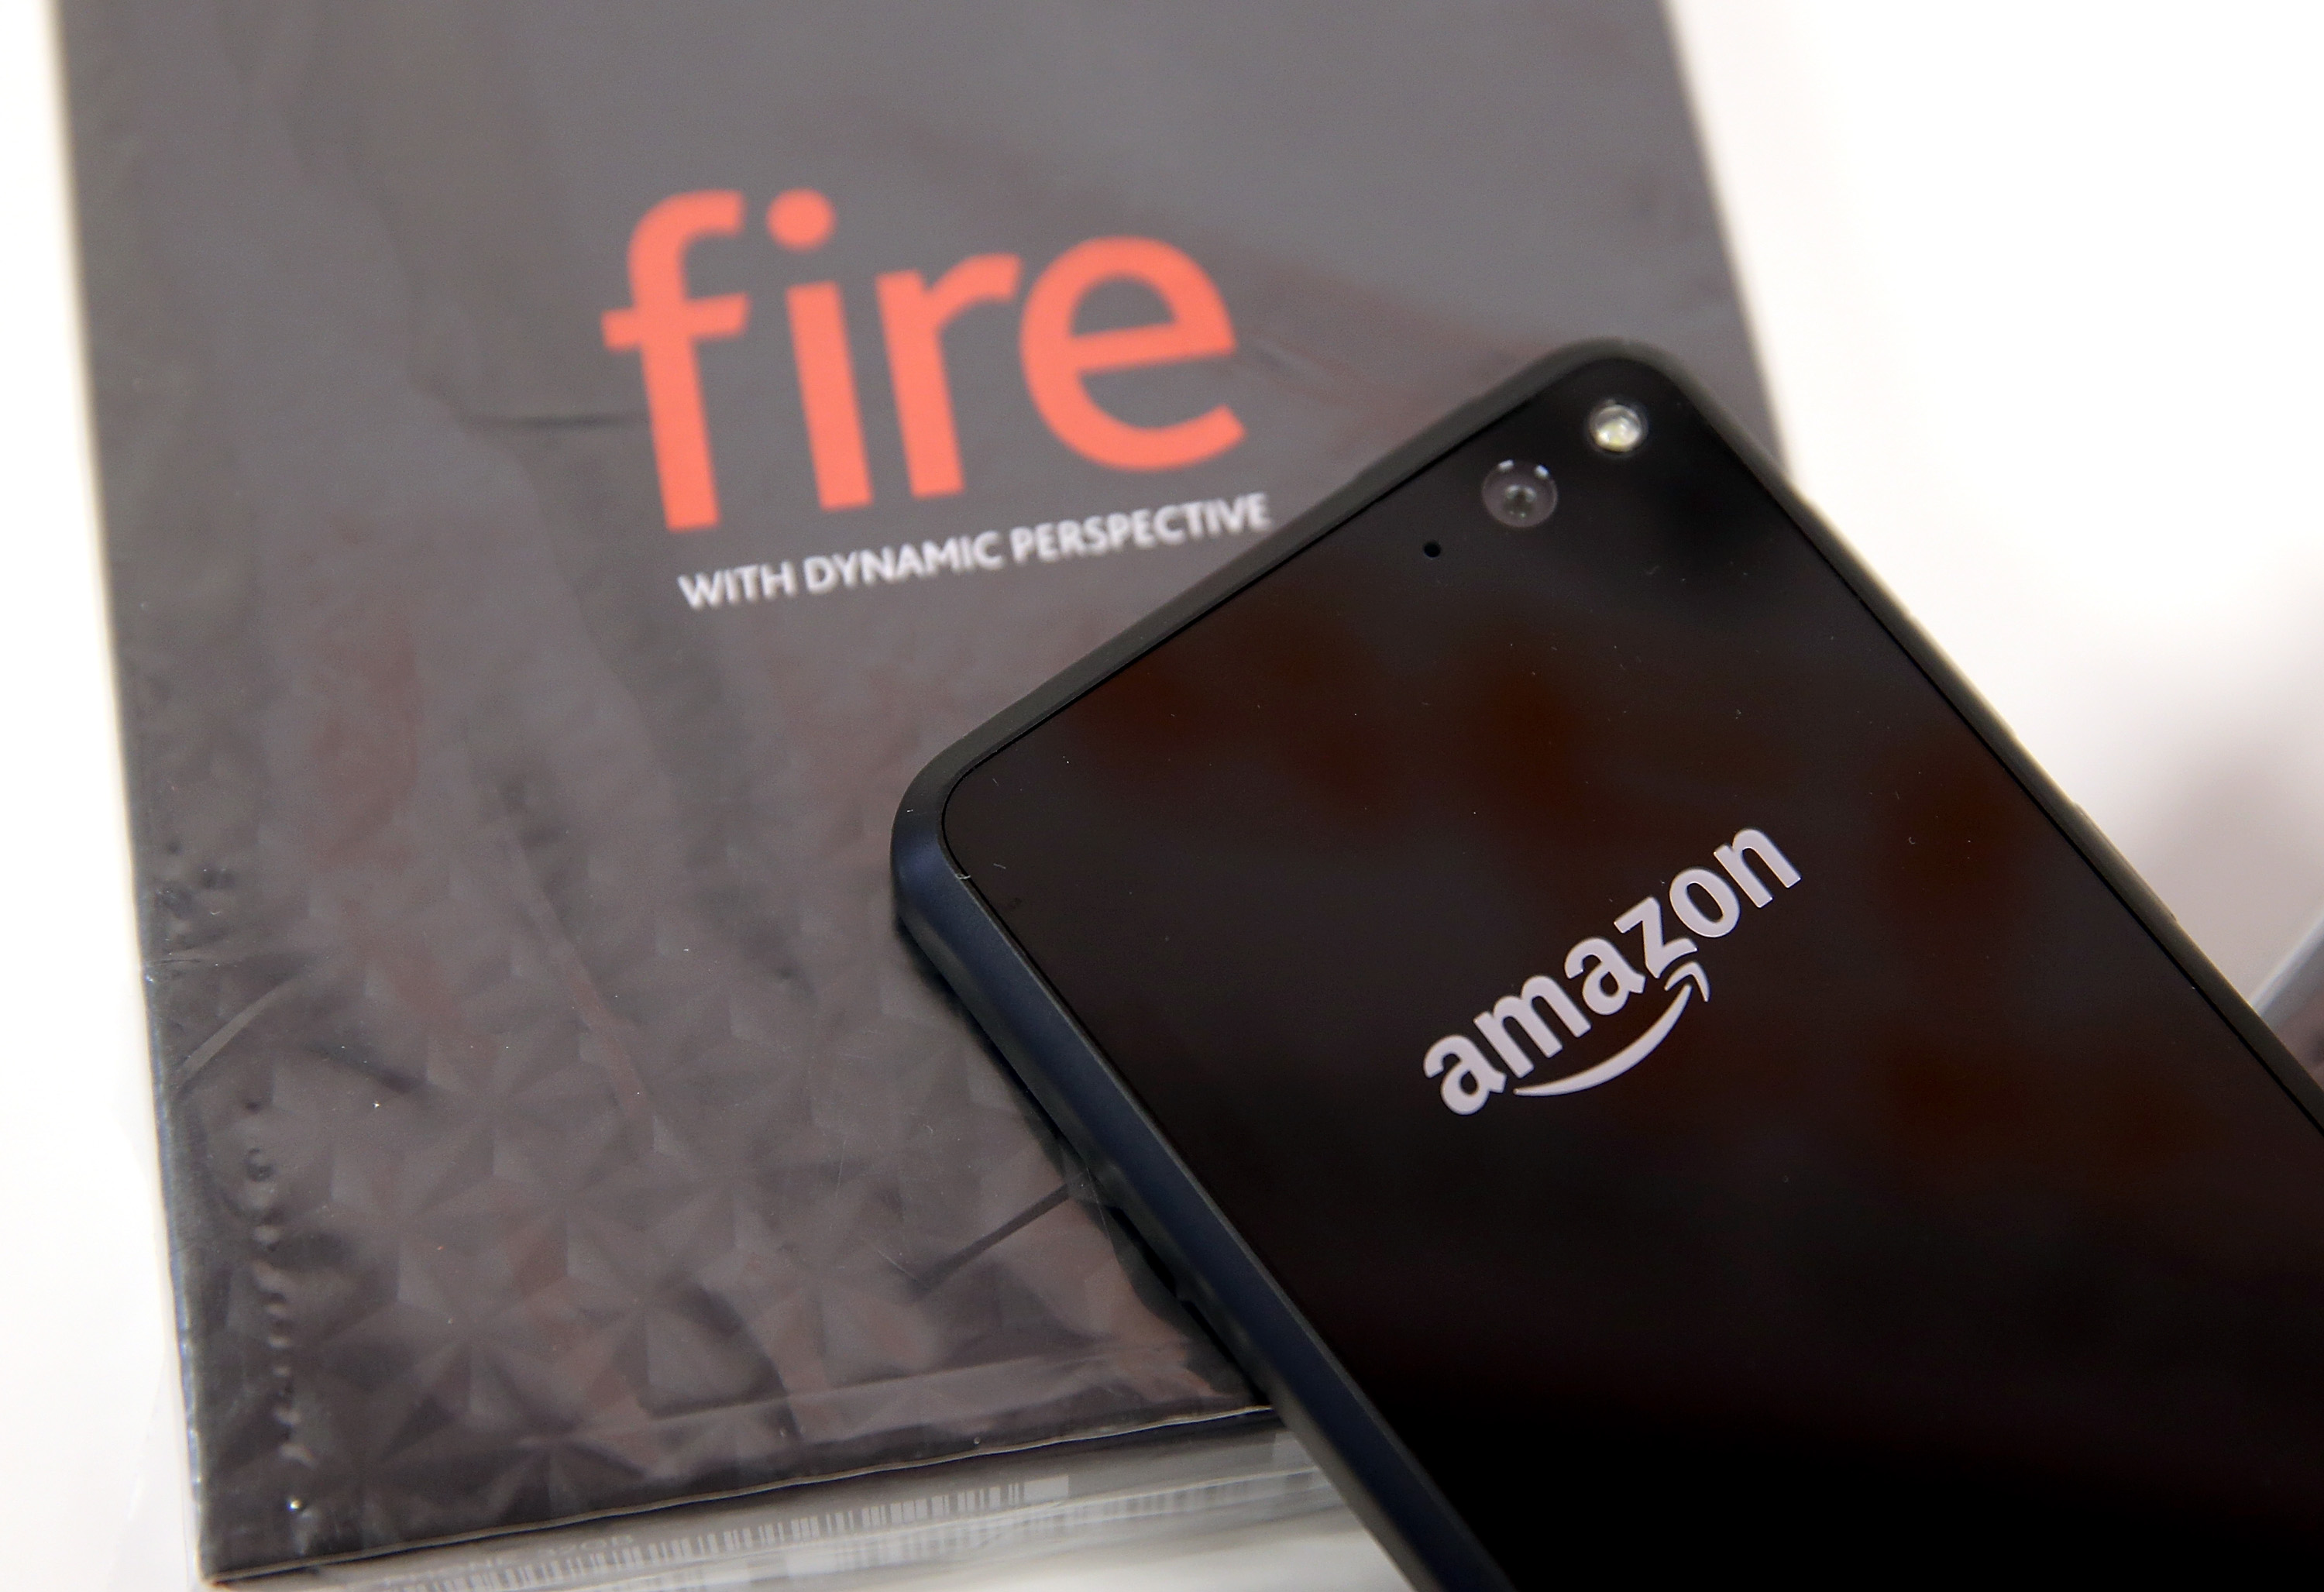 The Amazon Fire phone is displayed at an AT&T store on July 25, 2014 in San Francisco, California.